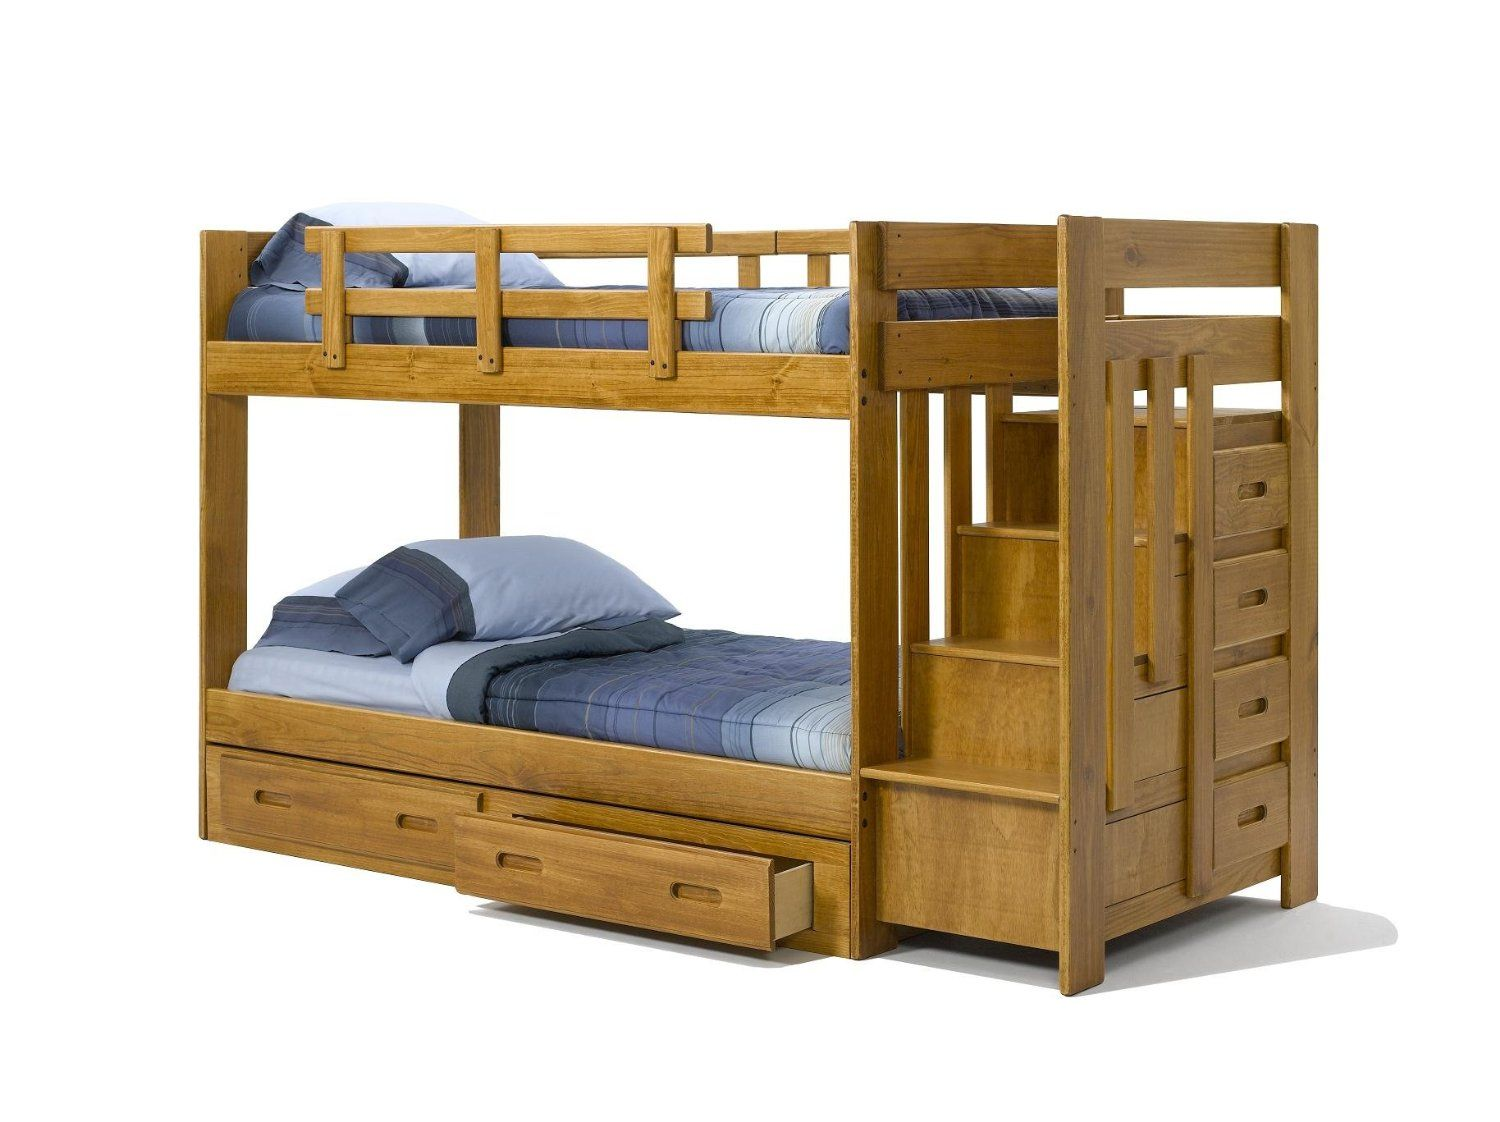 Beau 10 Tips For Selecting The Best Bunk Bed For Your Kids   Bunk Bed Buying  Guide